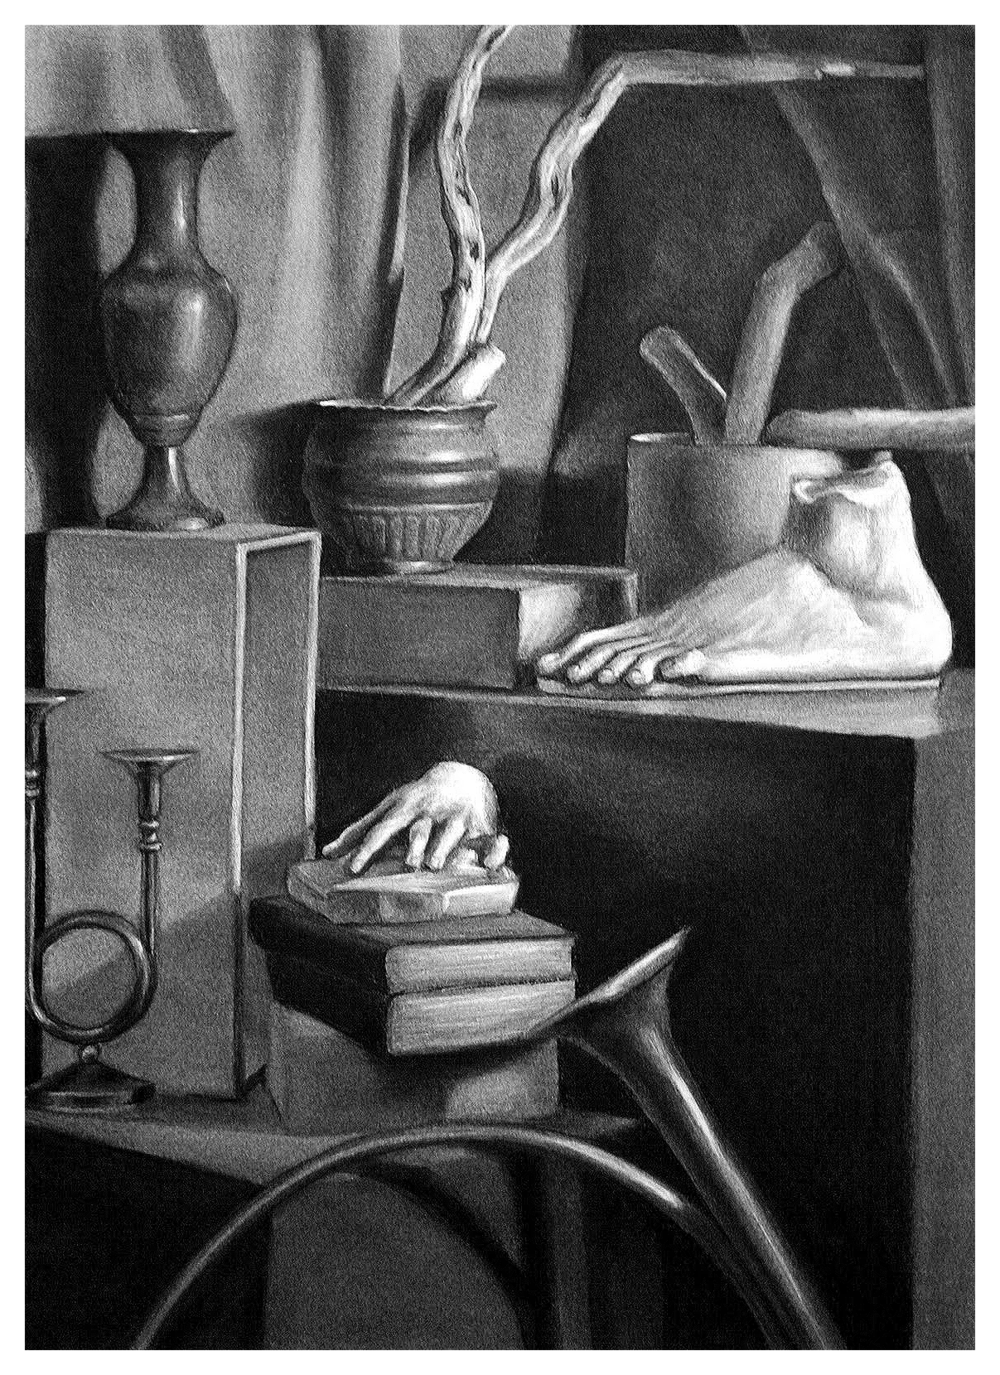 24 x 32 charcoal on paper